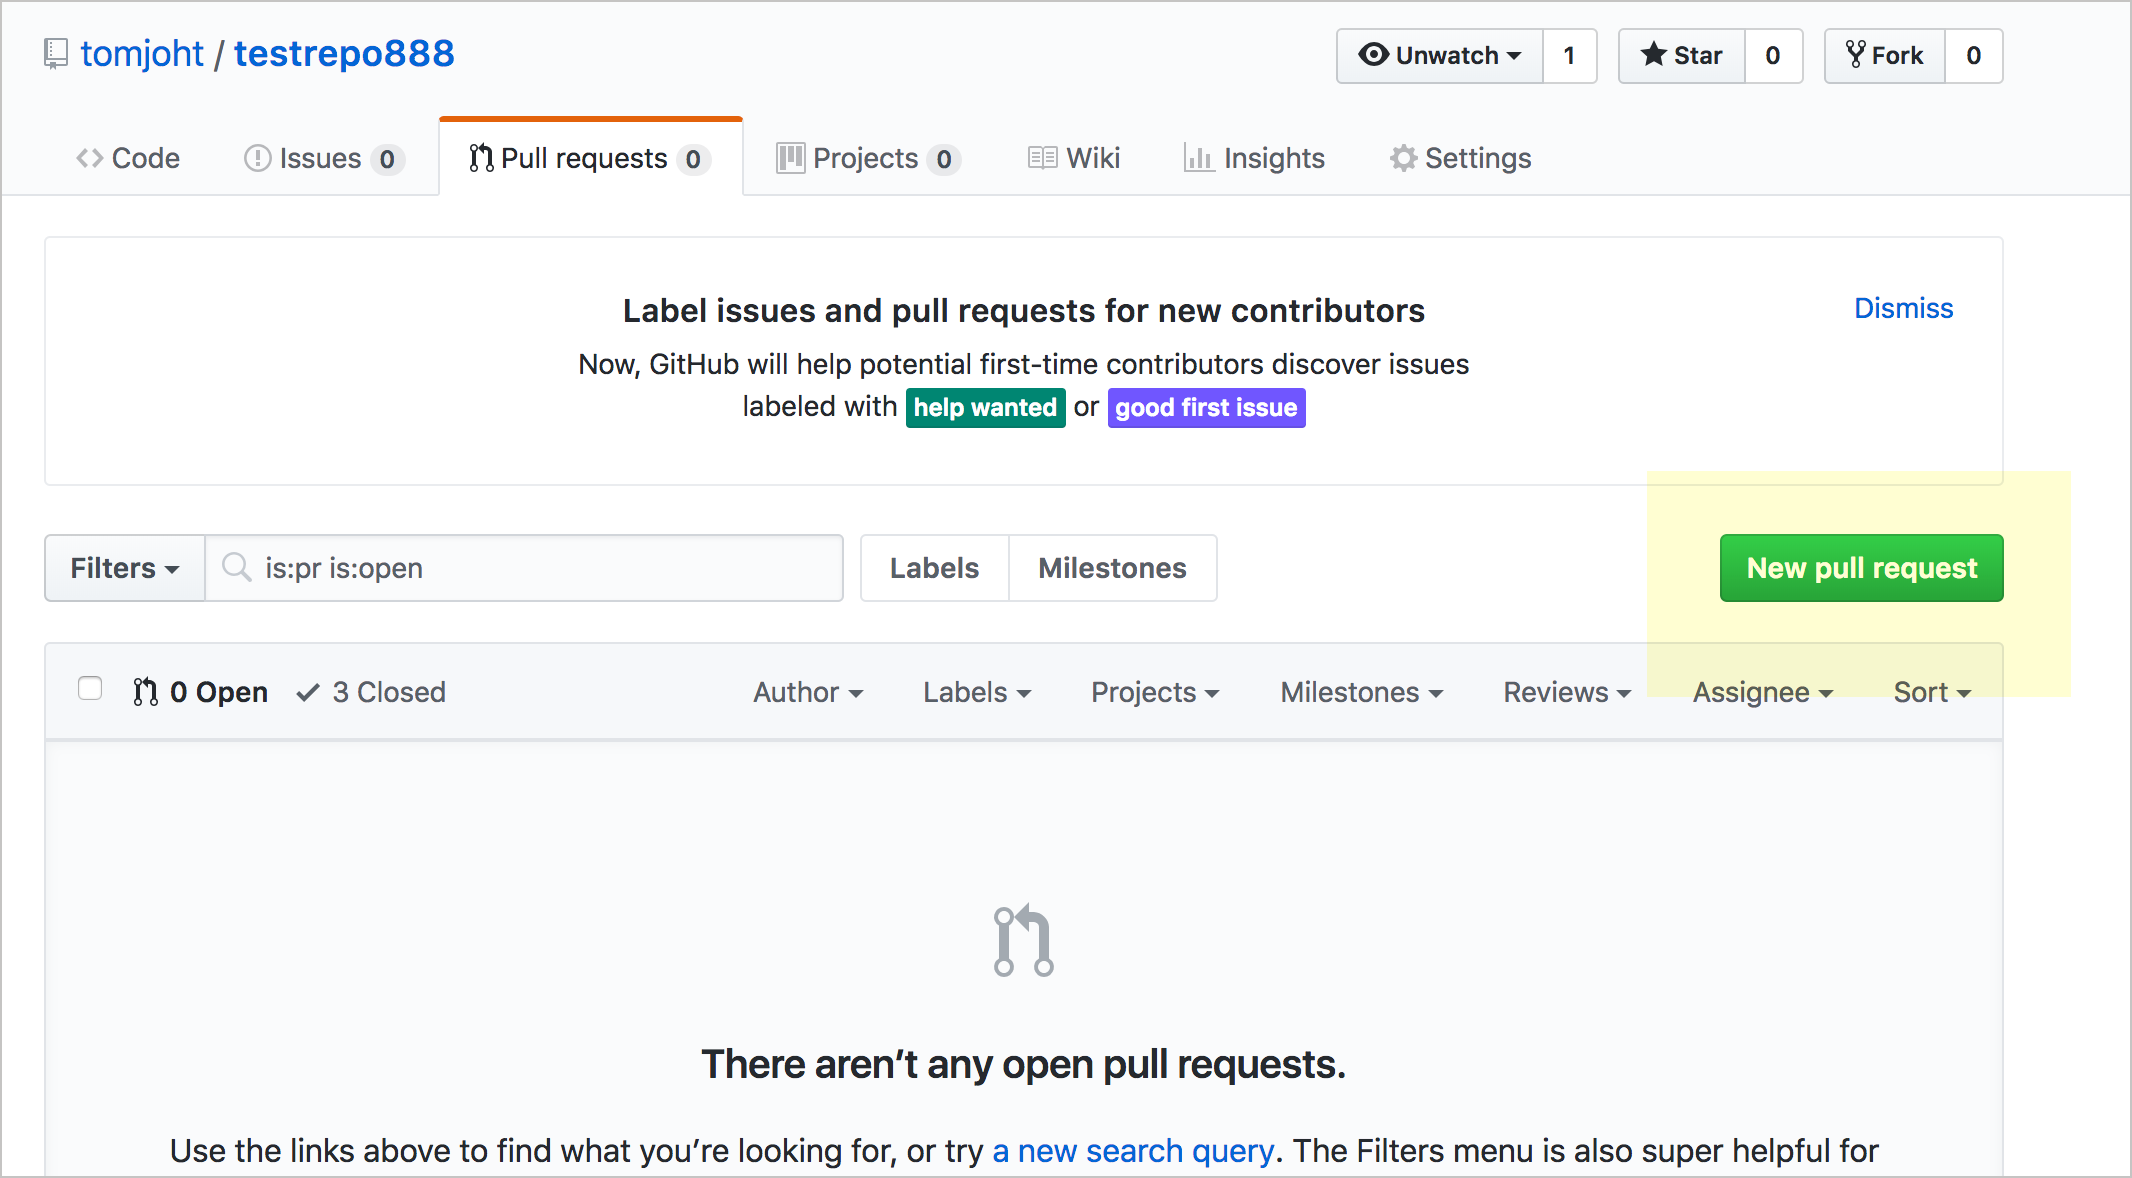 New Pull Request